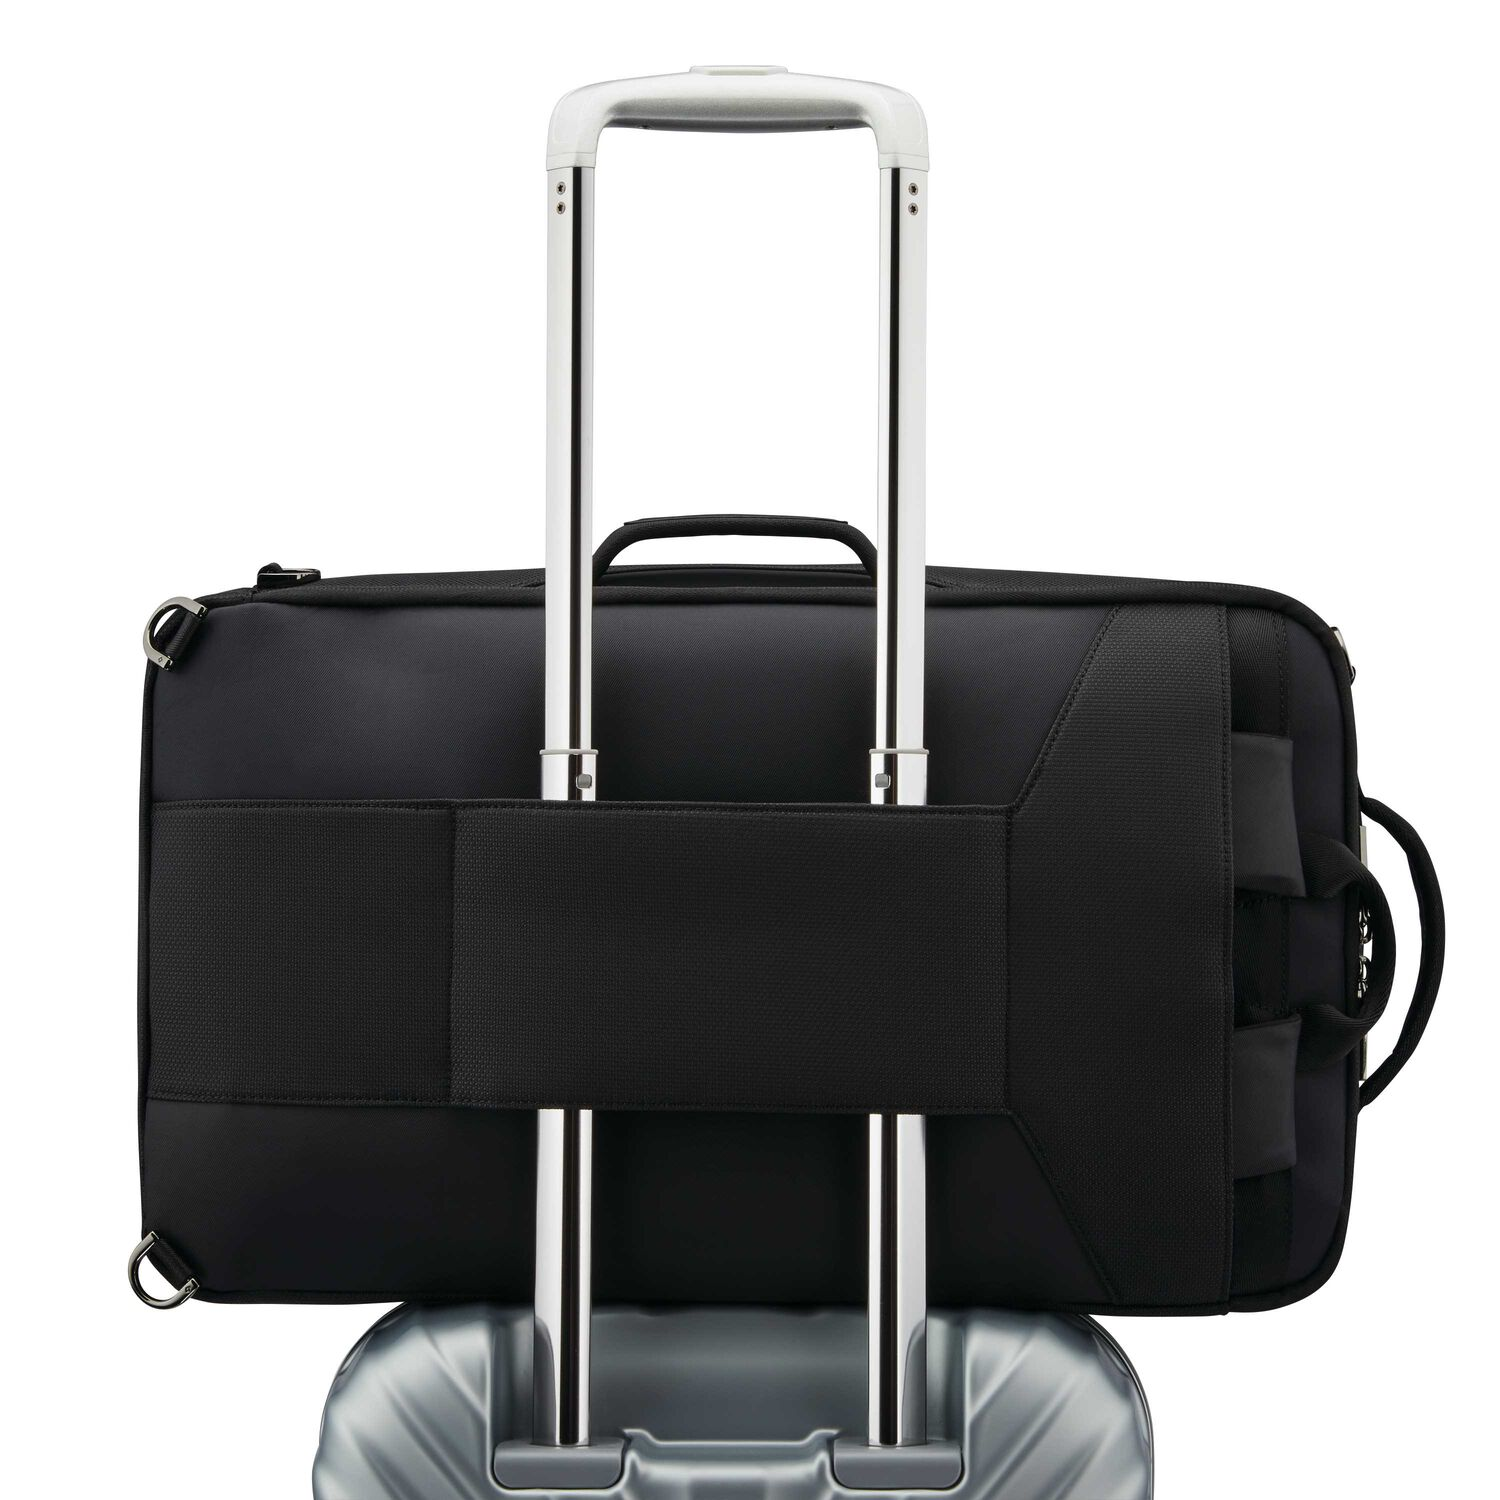 c92f63dcb Samsonite Encompass Convertible Overnight Backpack in the color Black.